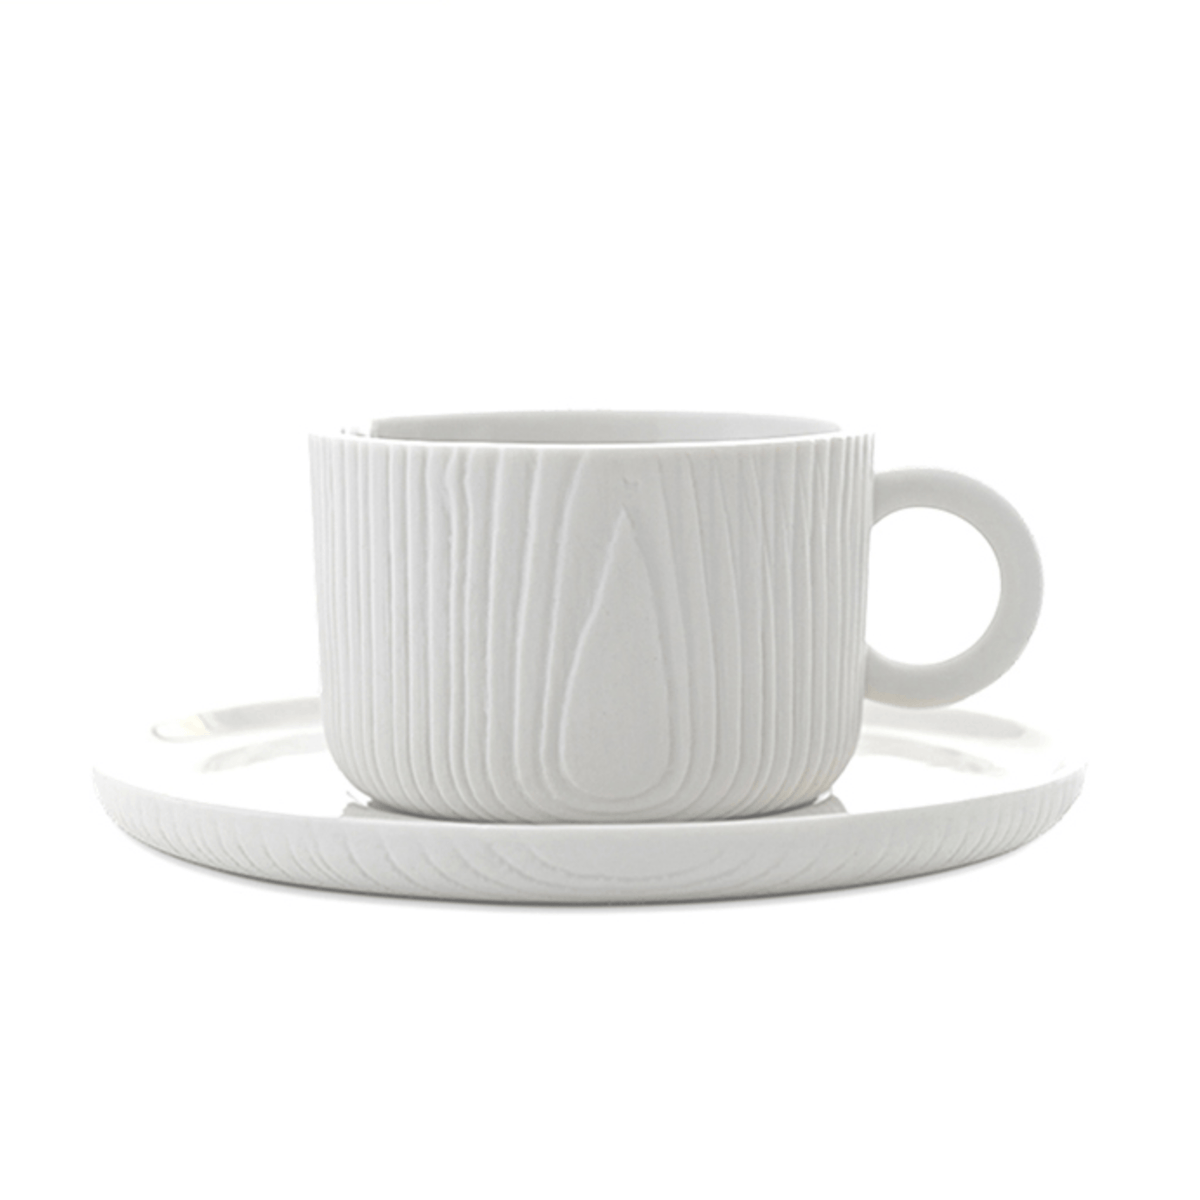 MU Coffee Cup & Saucer - White